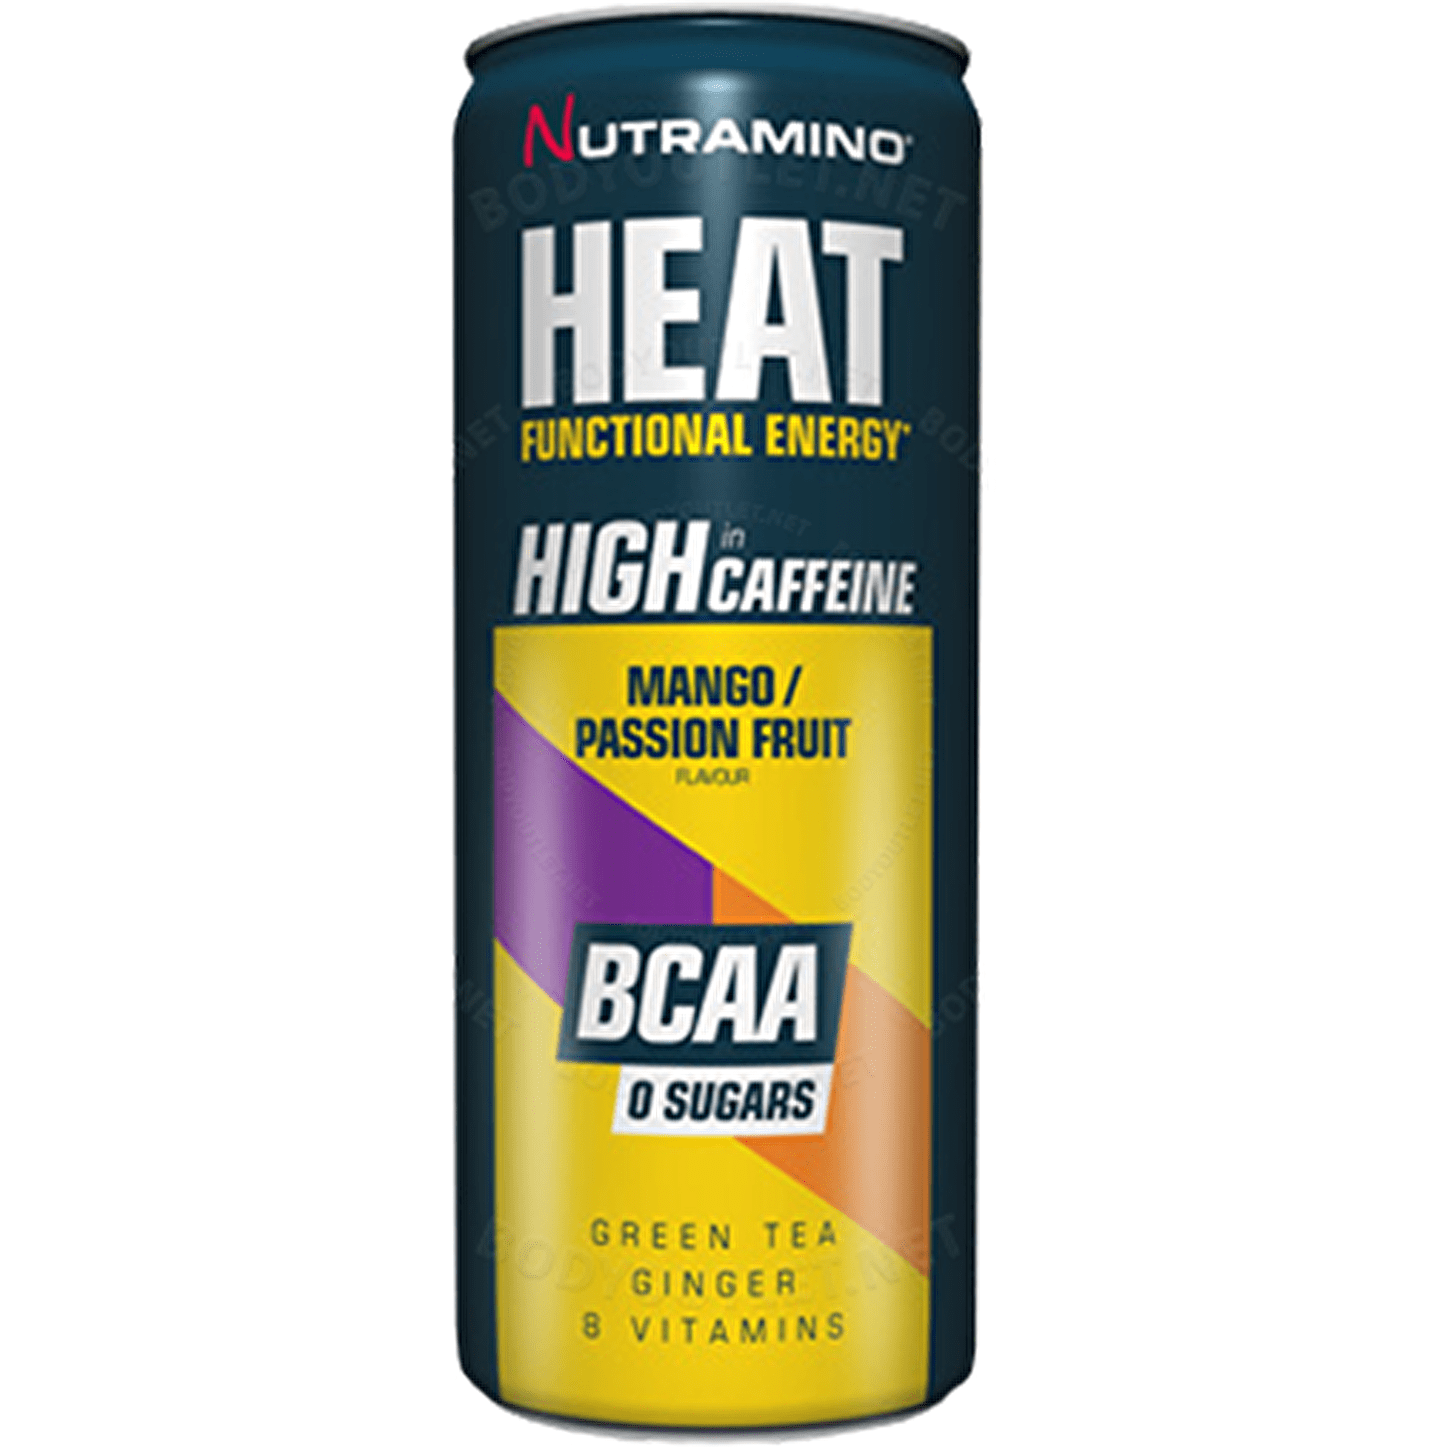 nutramino-energy-drinks-24-x-330ml-mango-passion-nutramino-heat-bcaa-posted-protein-17124299216_2000x